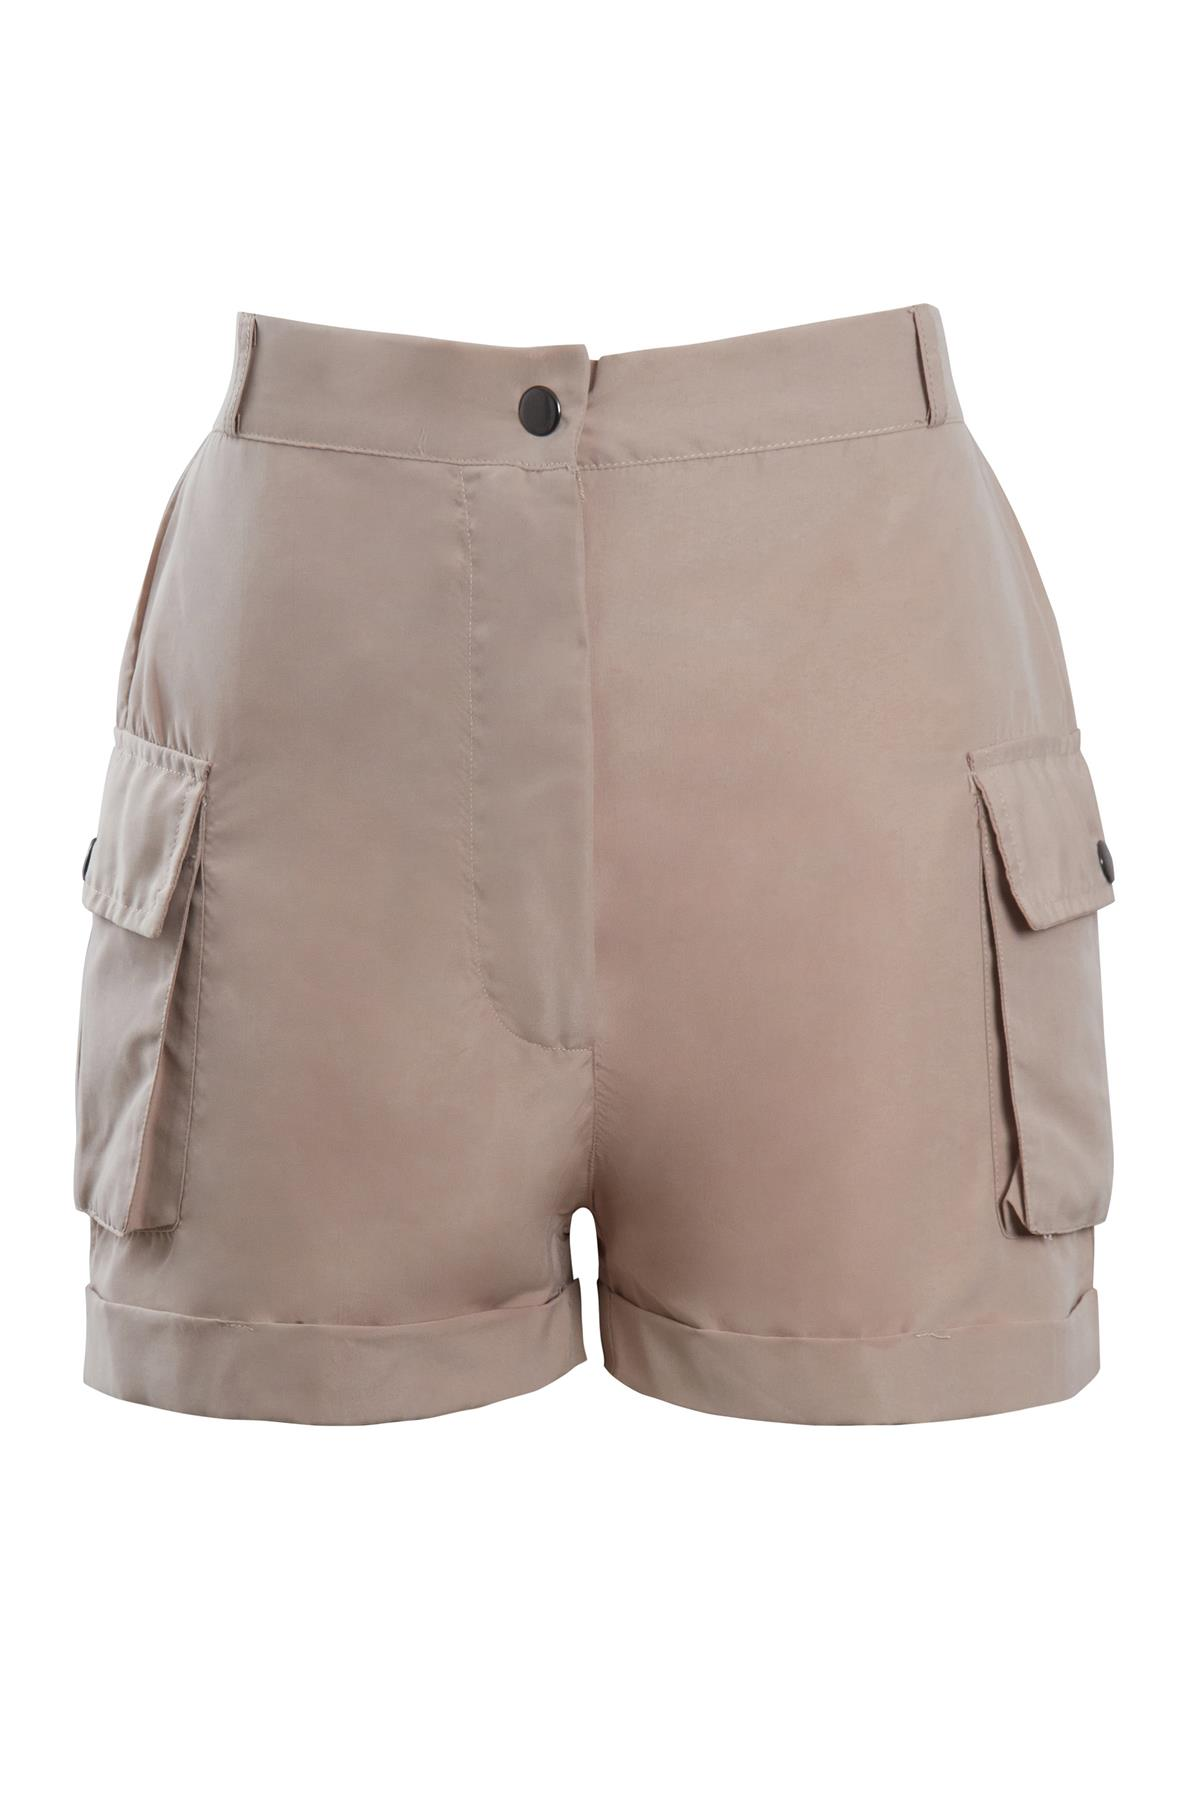 Shelikes-Womens-Cargo-Crop-Top-Shorts-Co-ord-Festival-Tie-Front-Pocket-Set thumbnail 24